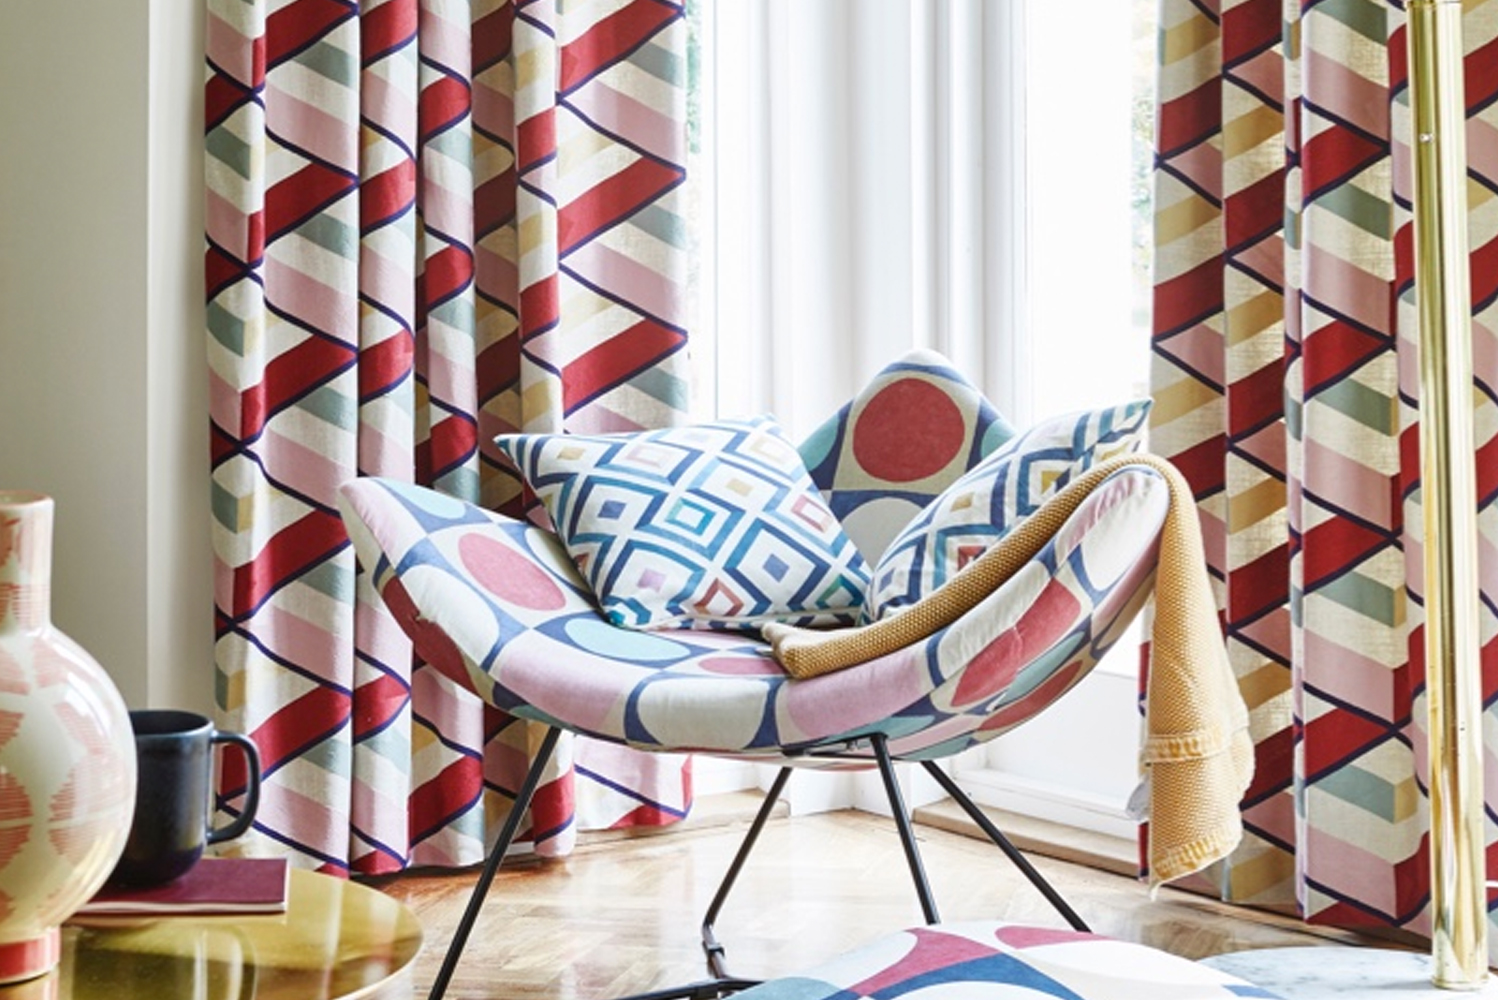 The collection recreates the Bauhaus movement's distinctive block-printed motifs in new tones.